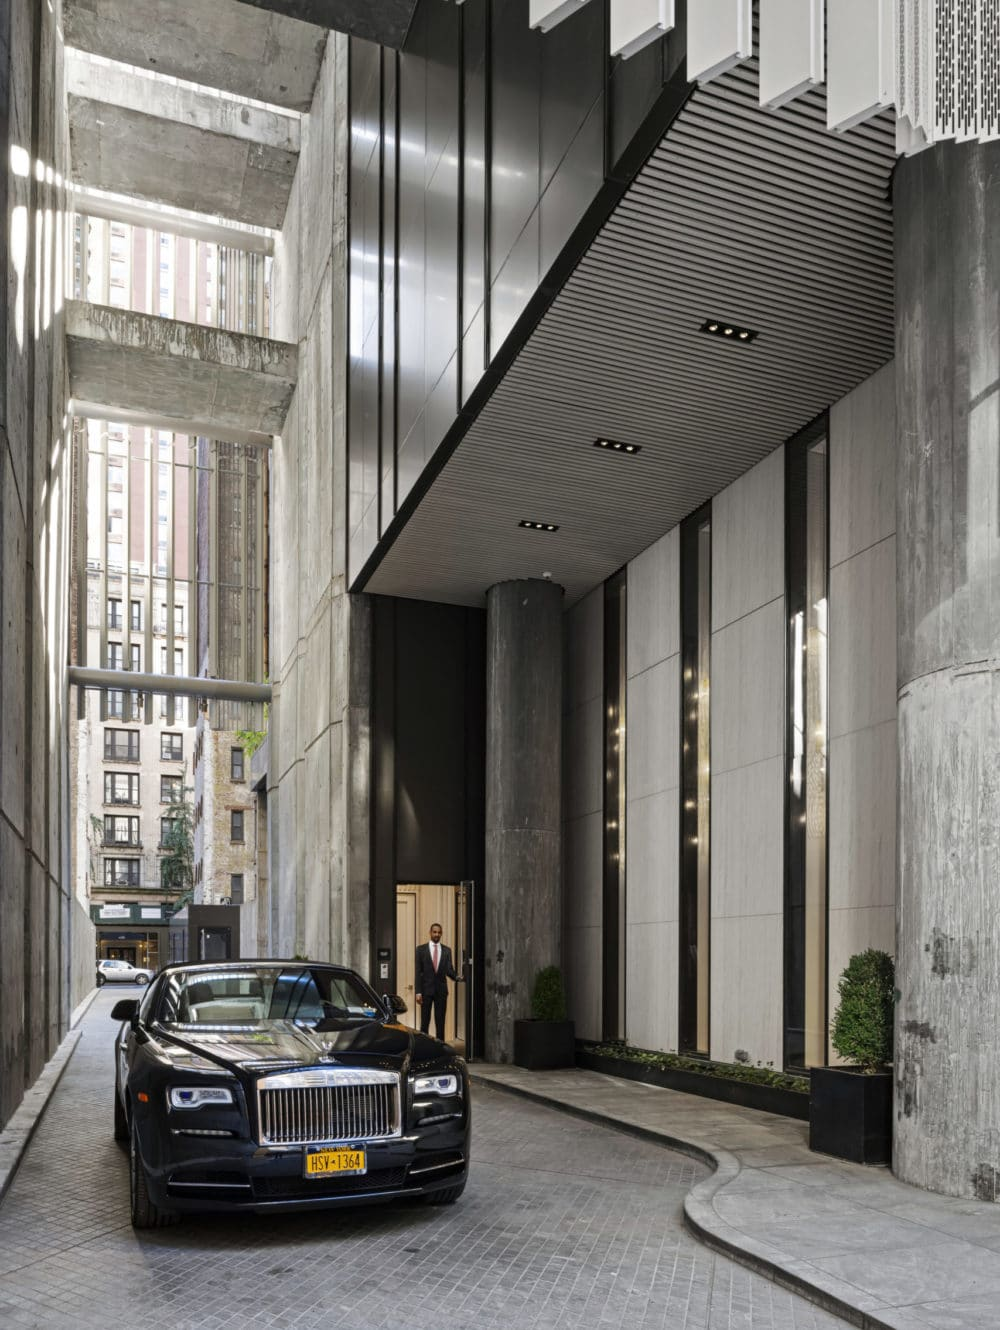 Valet parking at The Centrale luxury condos in New York. Car parked in the driveway next to building with a doorman waiting.